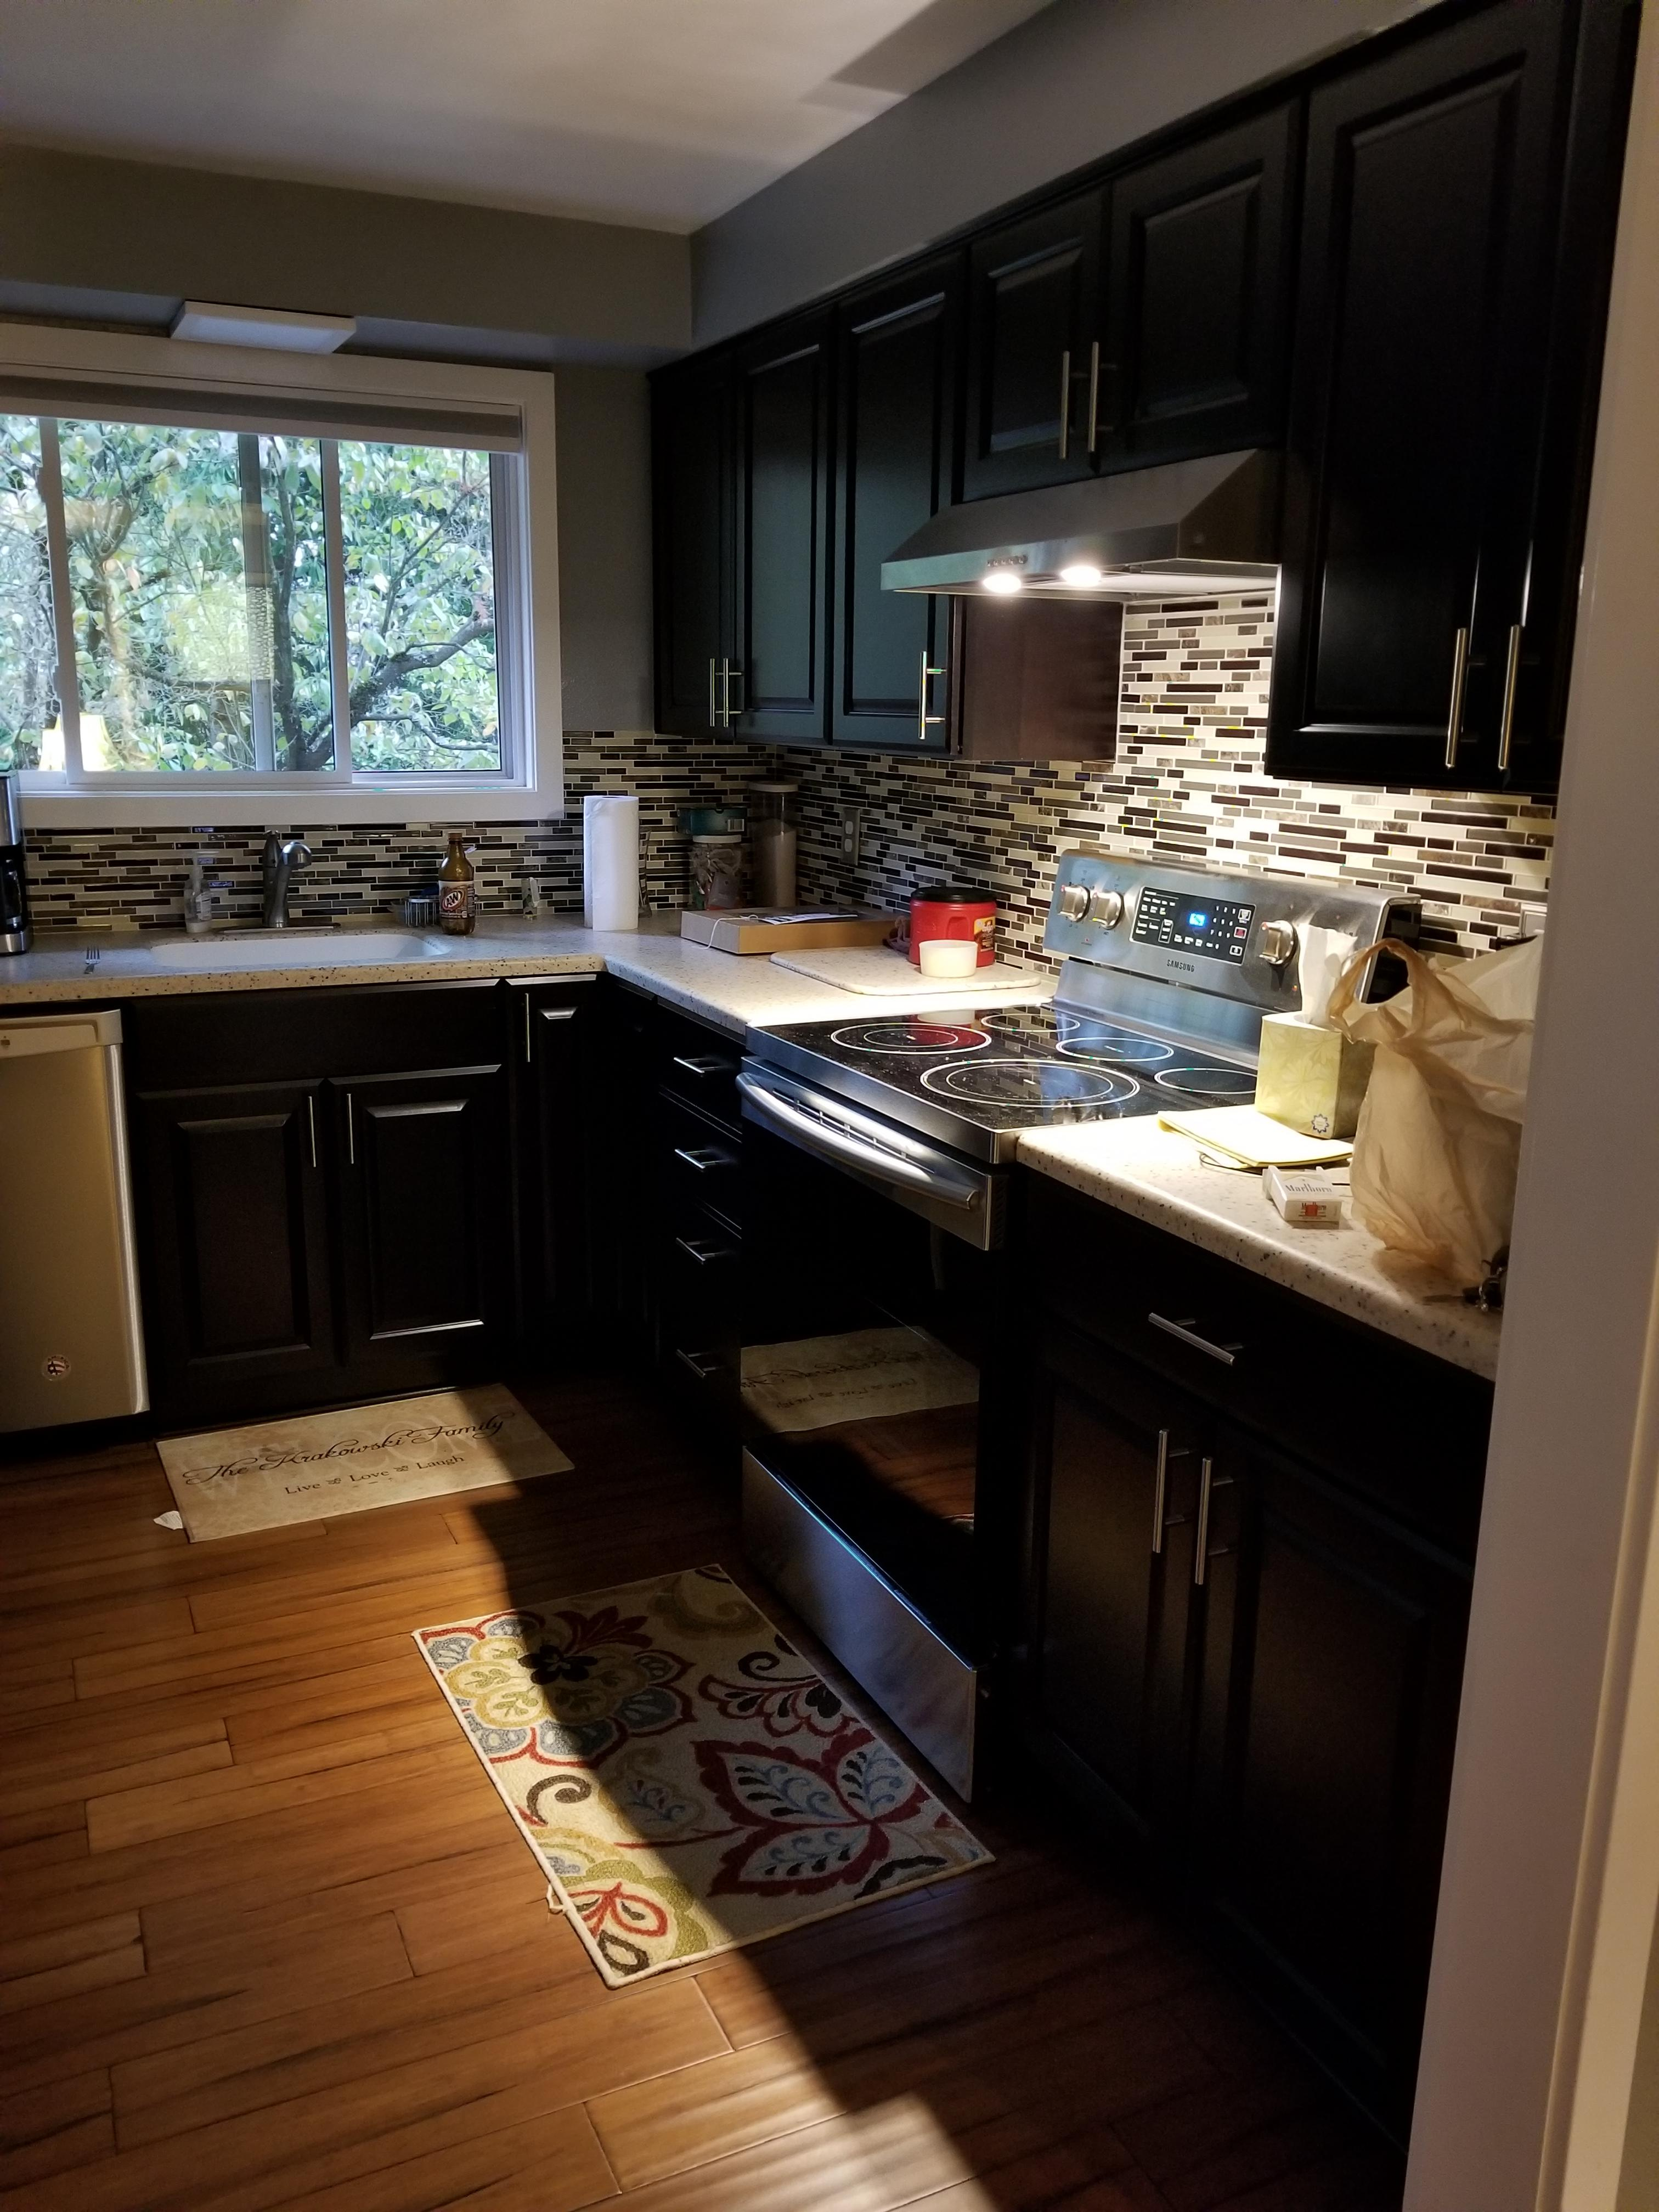 Top 10 Reviews of Lowes Kitchen Cabinets